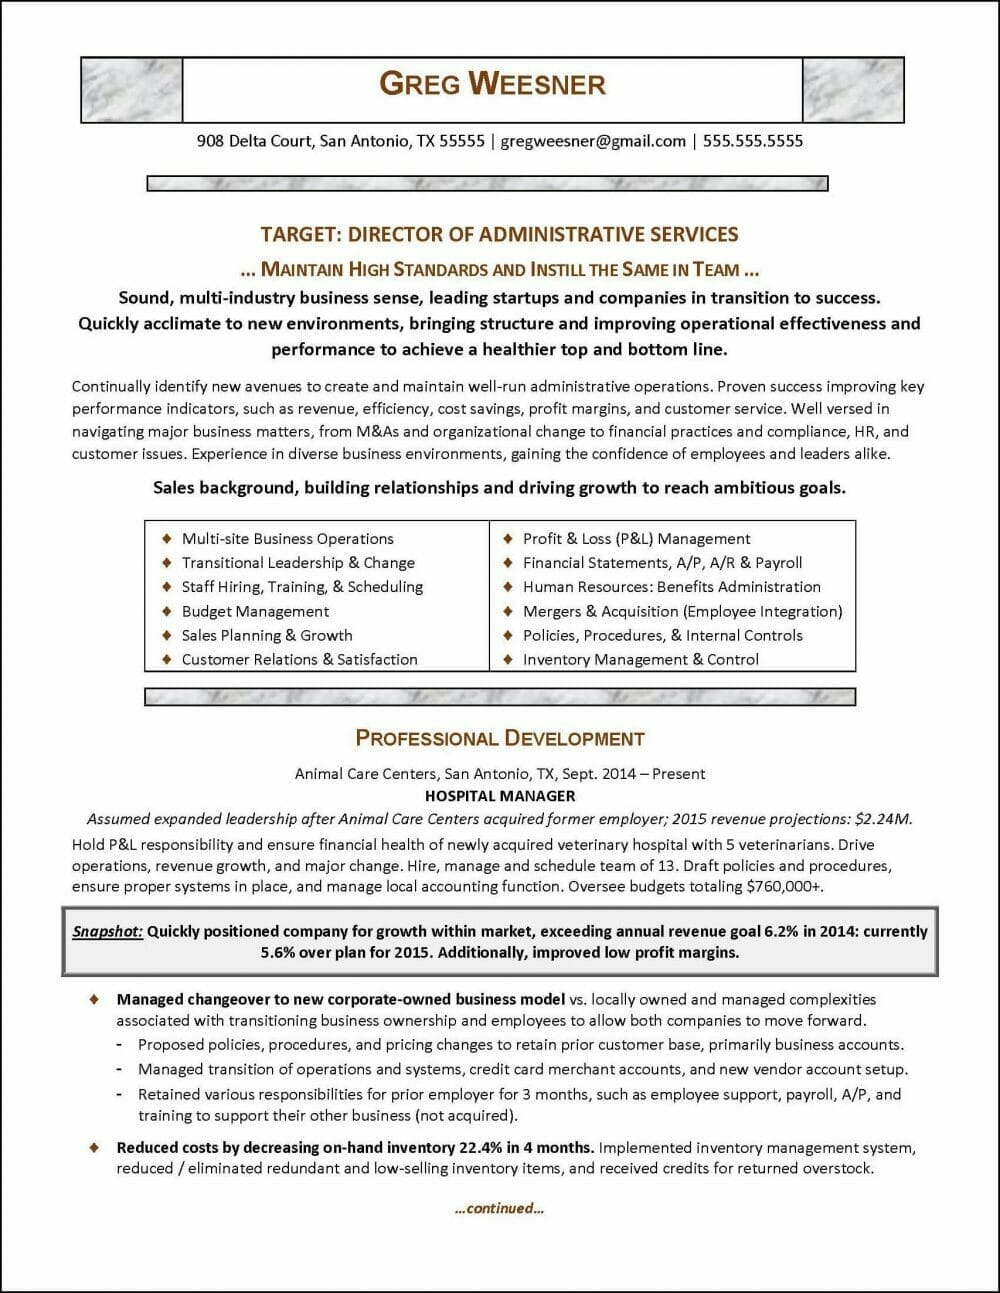 career change resume for new industry distinctive services example dental lab technician Resume Career Change Resume Example